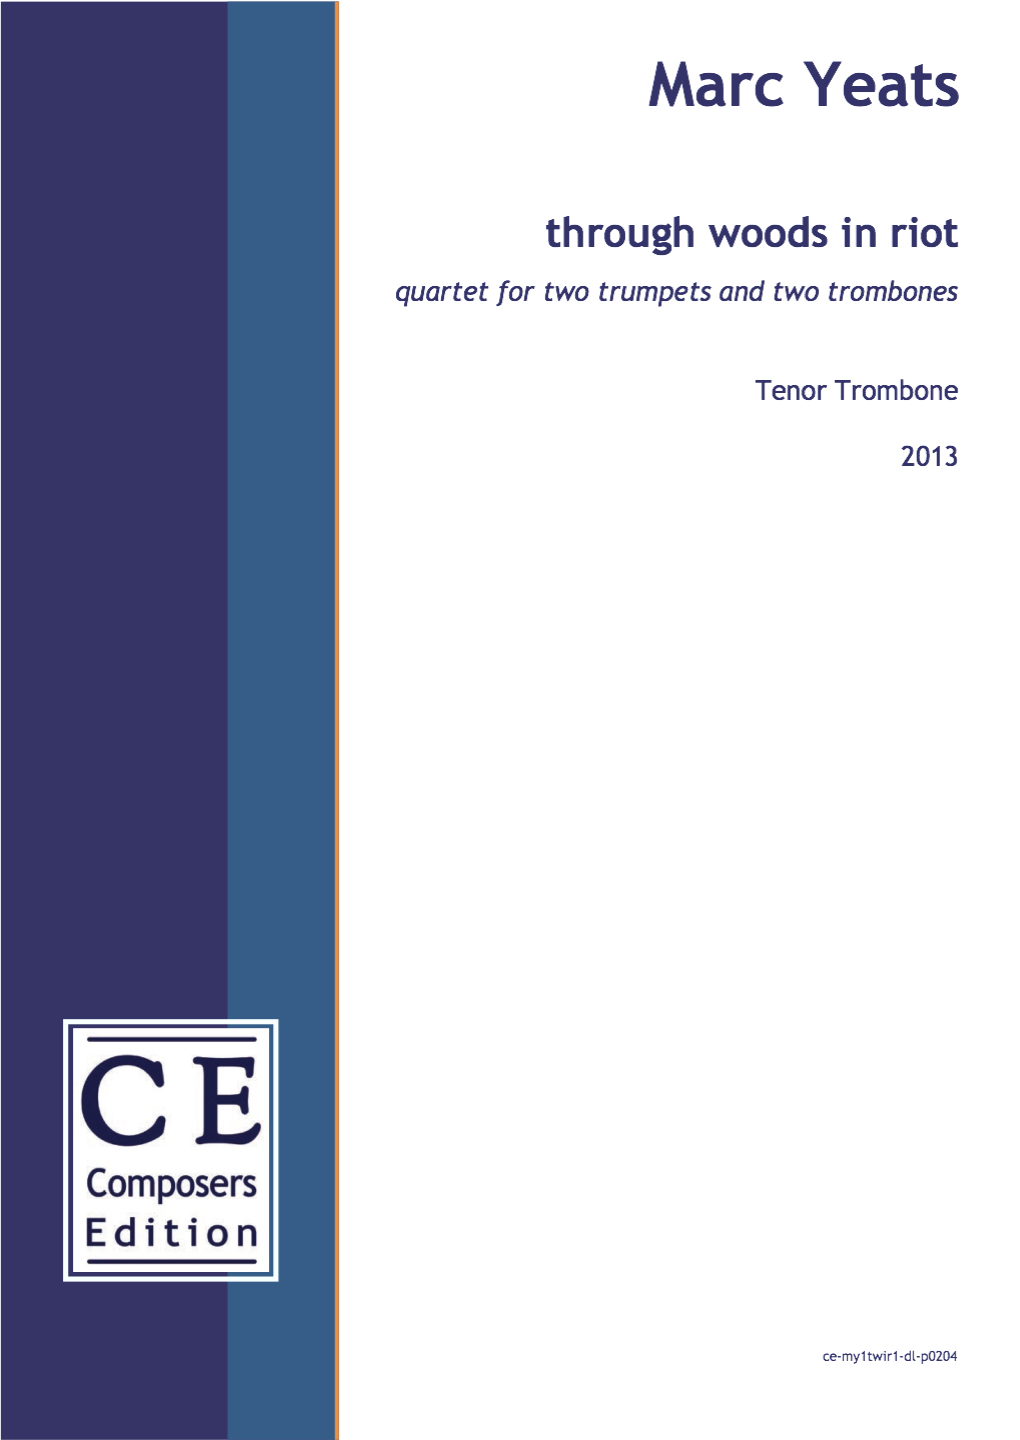 Marc Yeats: through woods in riot quartet for two trumpets and two trombones